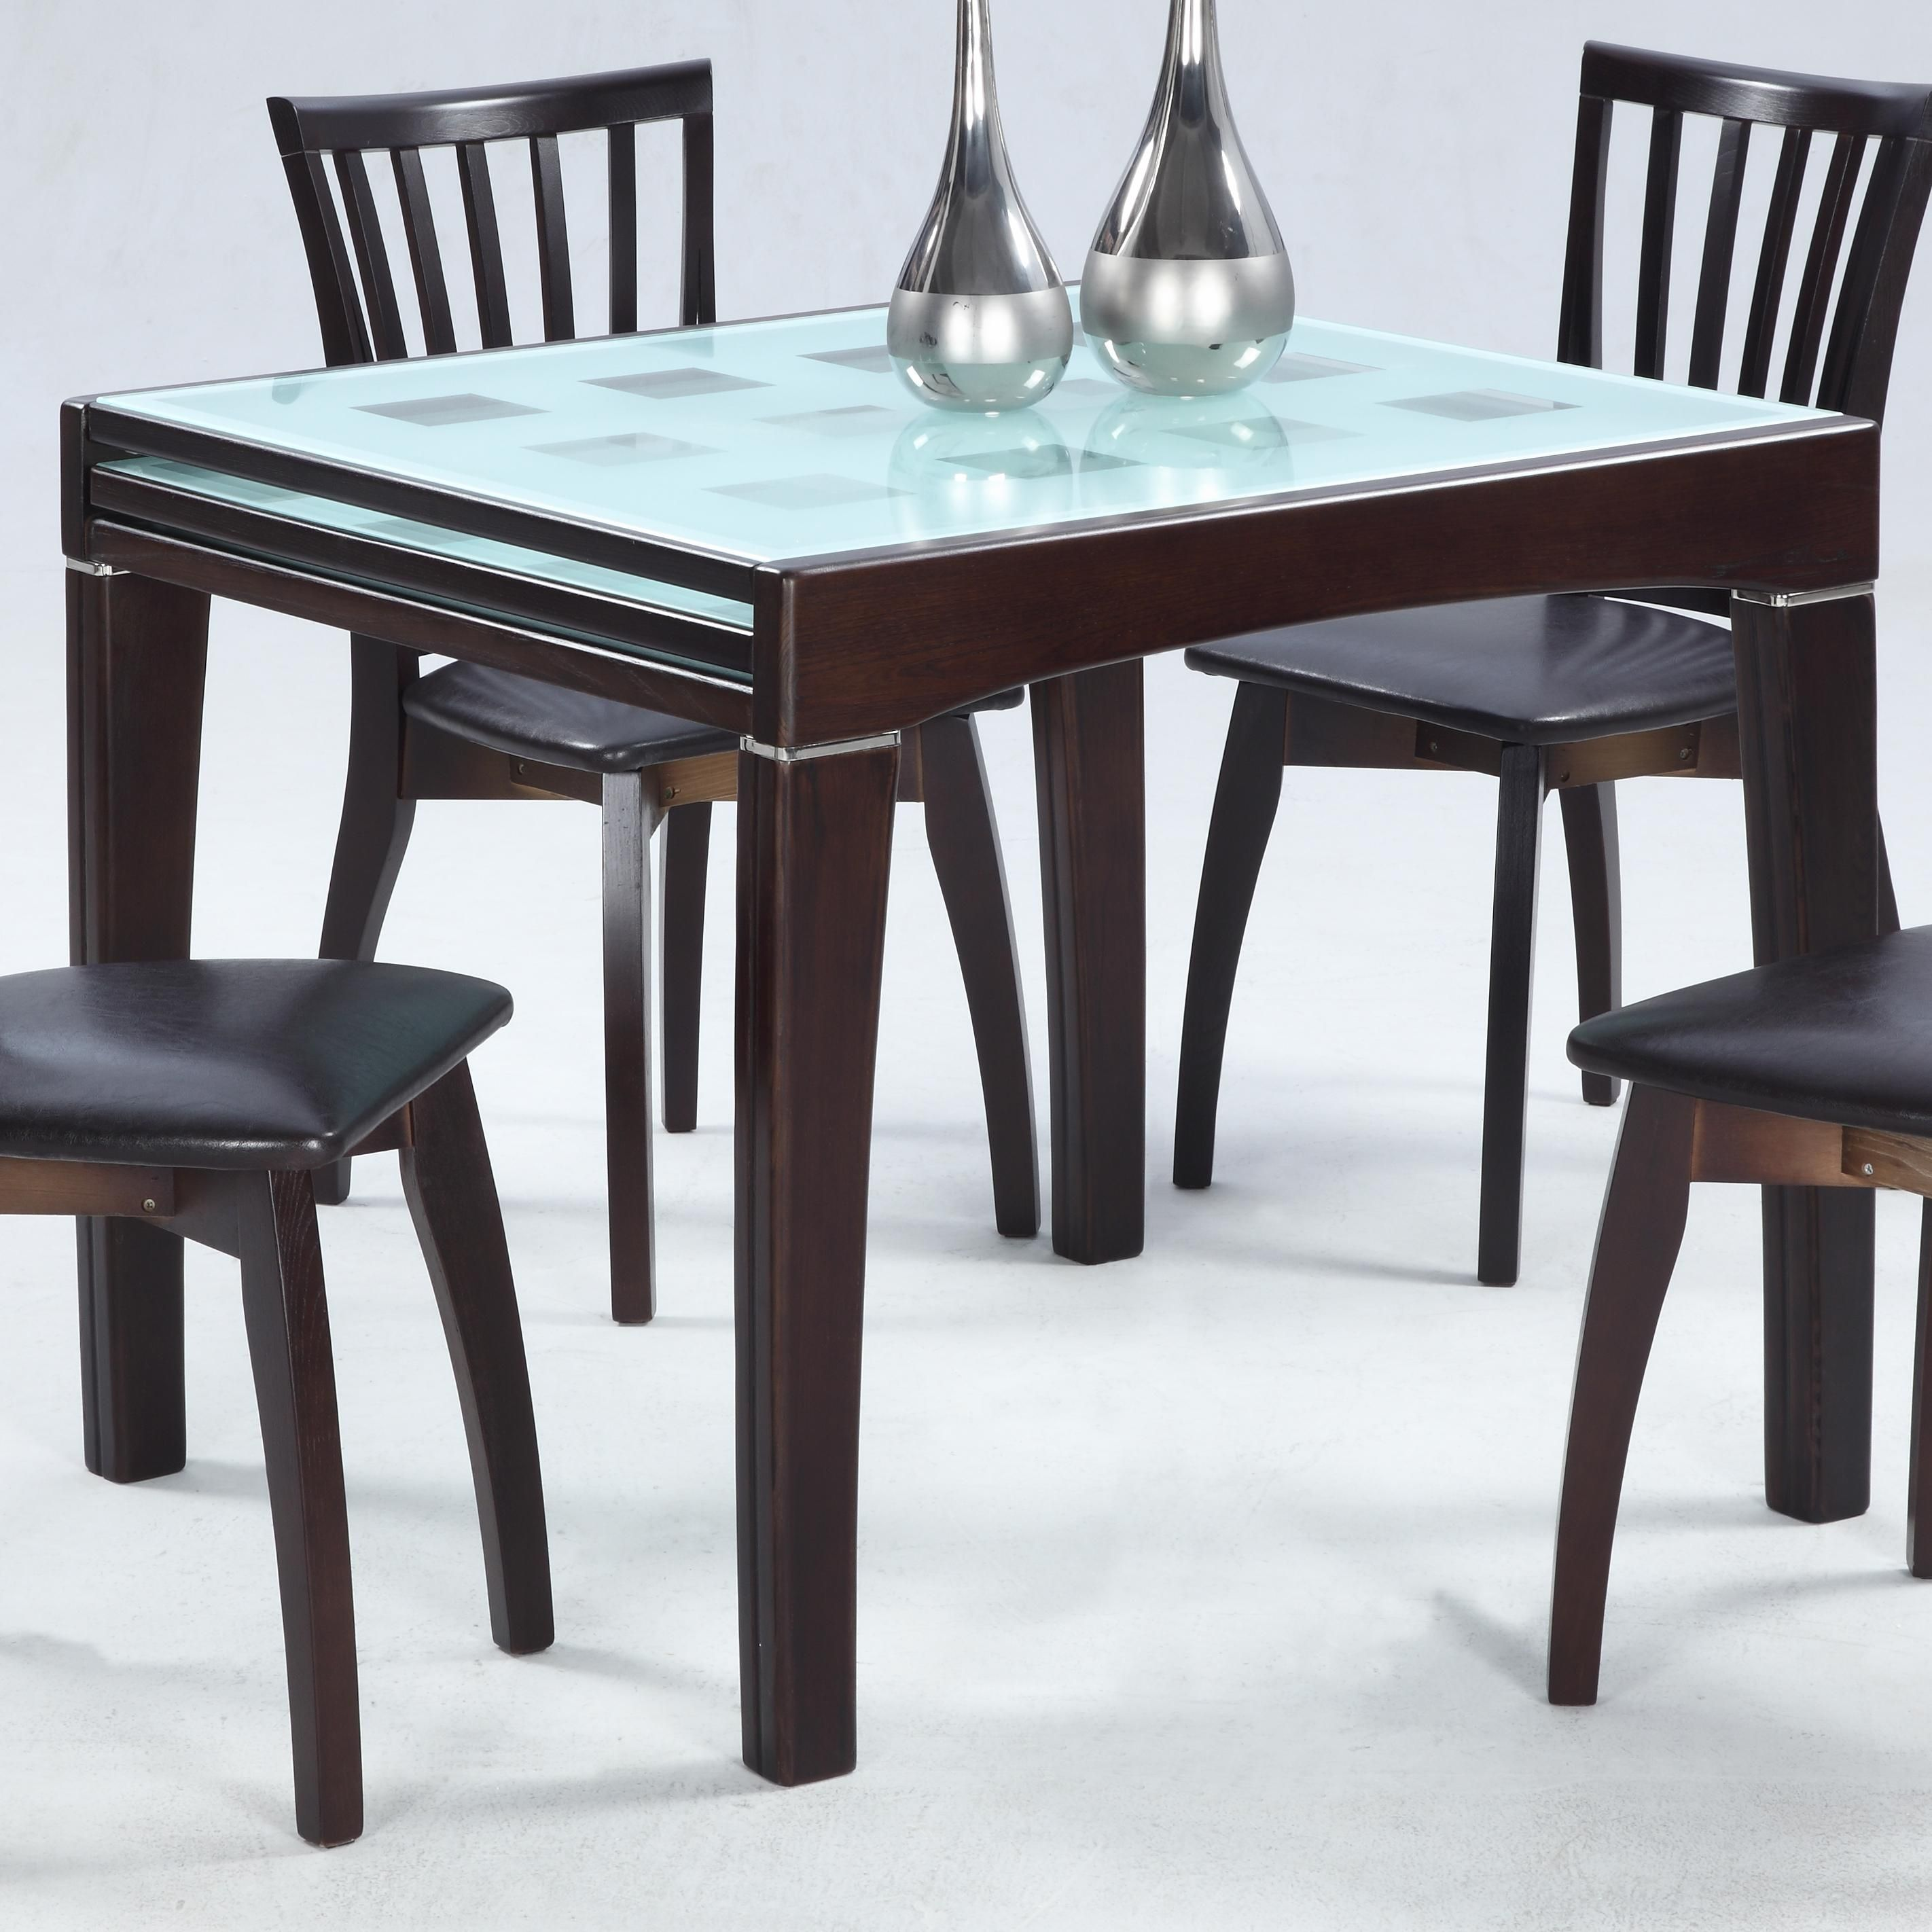 Square Dining Room Table With Extension